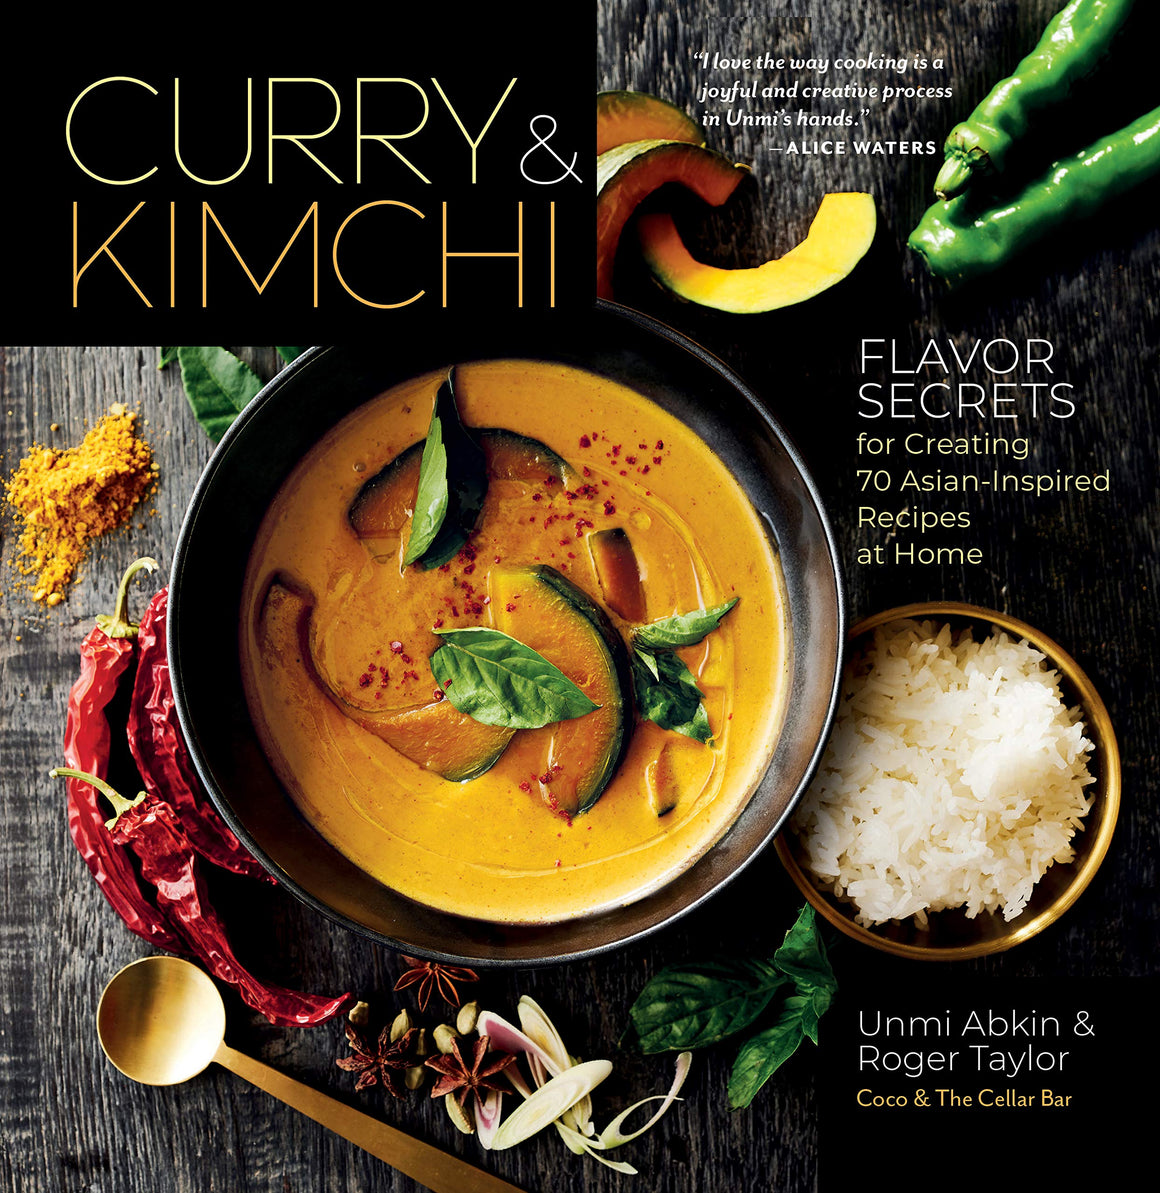 FREE AUTHOR EVENT! Thurs. Nov. 21 • Unmi Abkin & Roger Taylor • Curry & Kimchi: Flavor Secrets for Creating 70 Asian-Inspired Recipes at Home • 6:30 p.m.